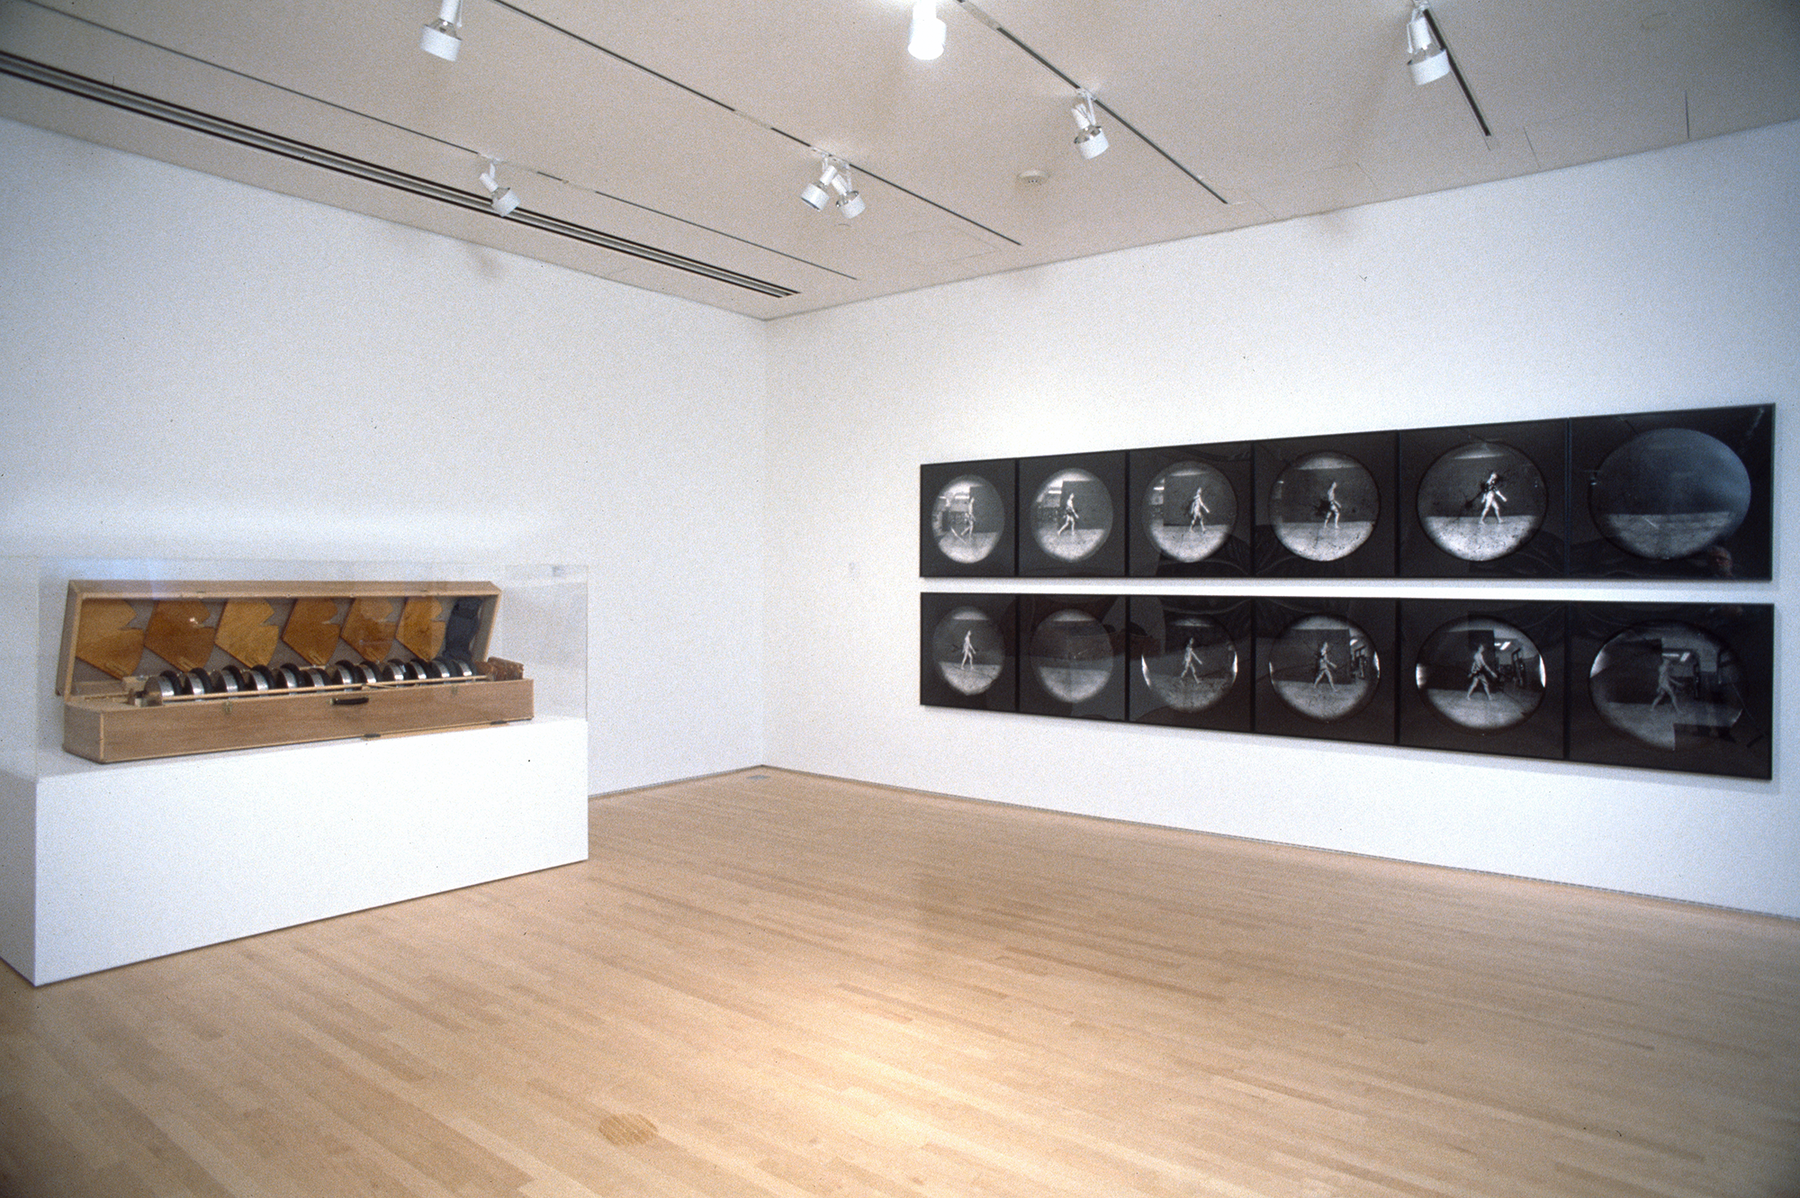 Two rows of round photographs hanging on a wall near a large wooden case